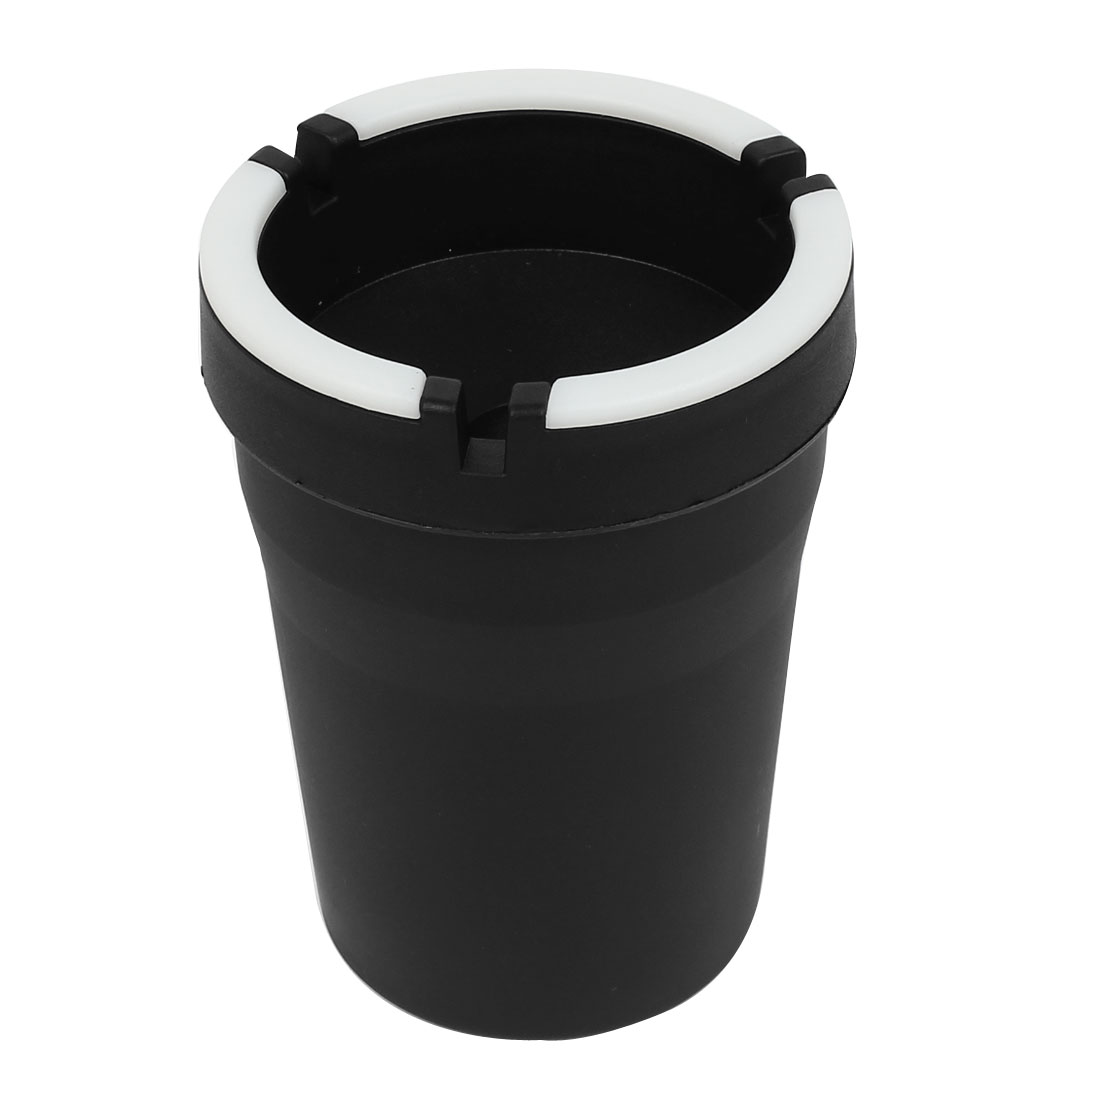 Auto Car White Black Noctilucence Cup Cigarette Container Cigar Holder Ashtray Ash Tray